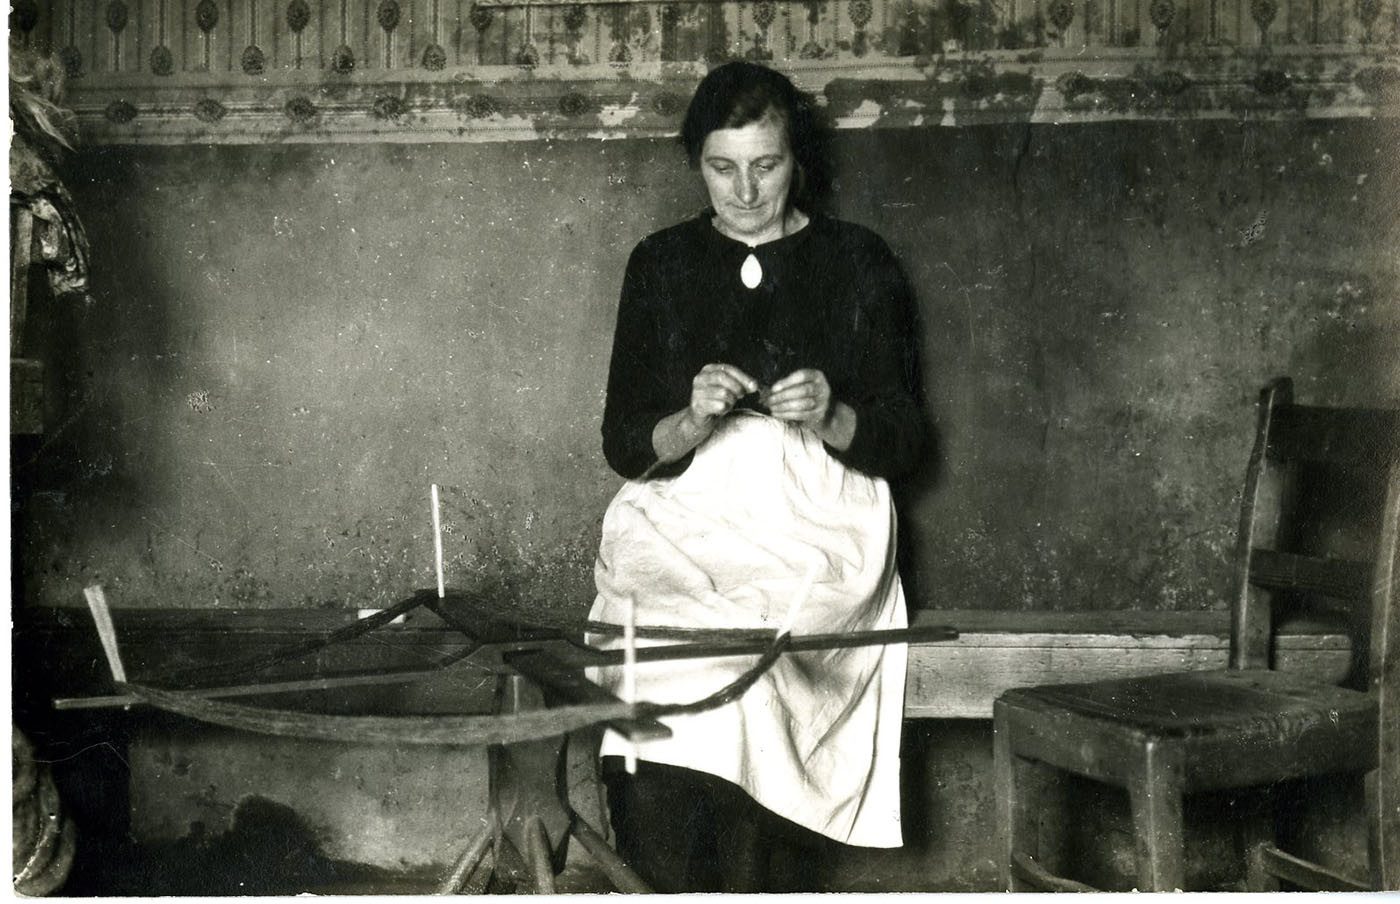 Warping yarn for the looms